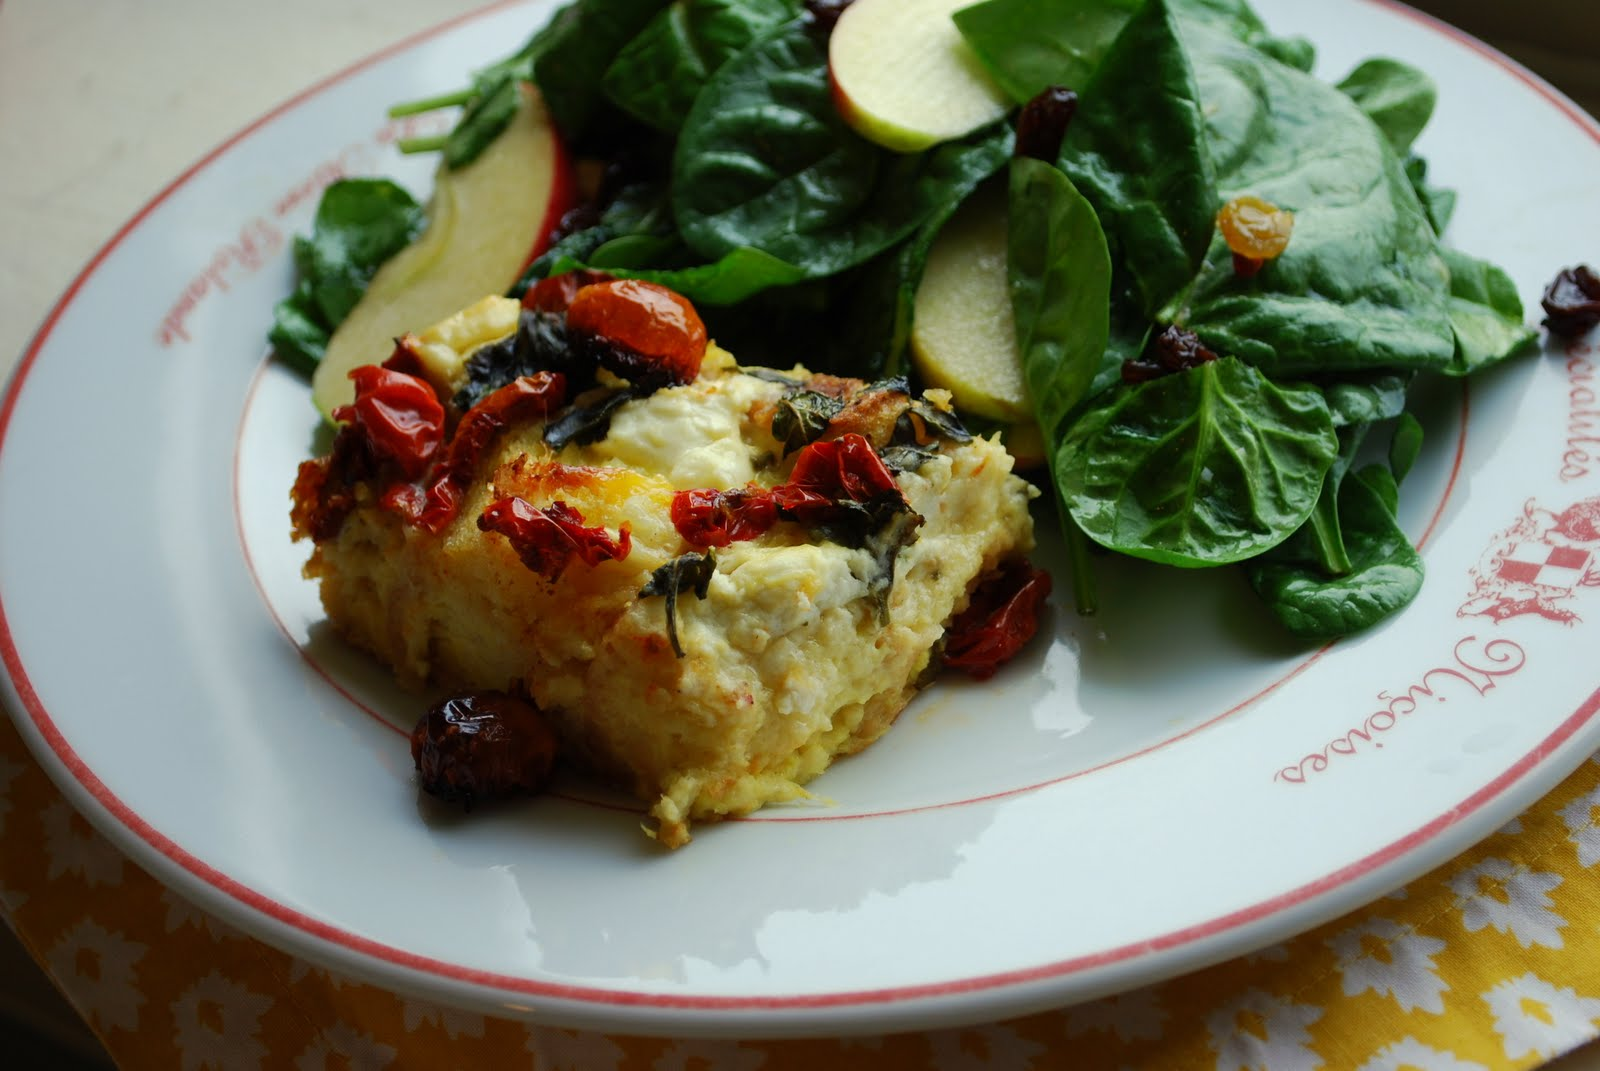 Egg Casserole With Italian Cheeses, Sun-Dried Tomato And Fresh Herbs